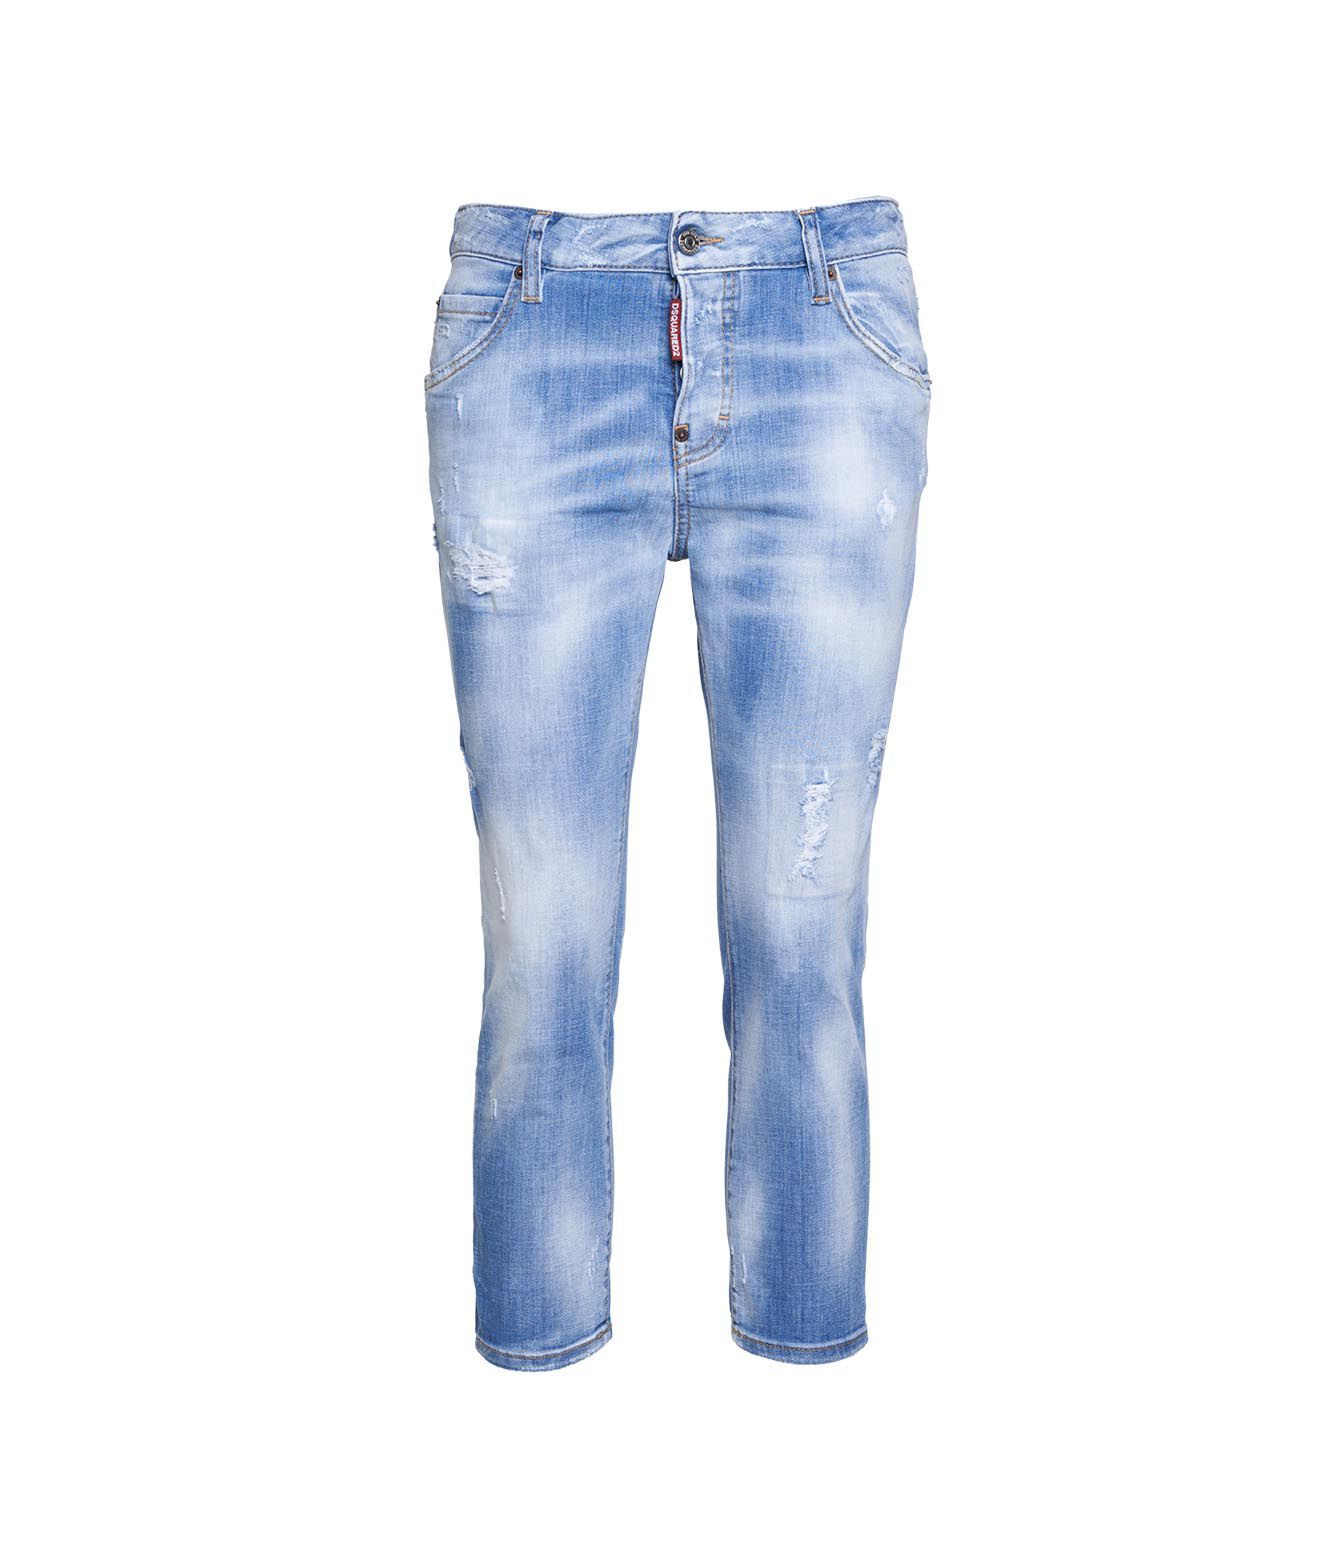 Dsquared2 Jeans DSQUARED2 WOMEN'S S75LB0508S3034211470 BLUE OTHER MATERIALS JEANS